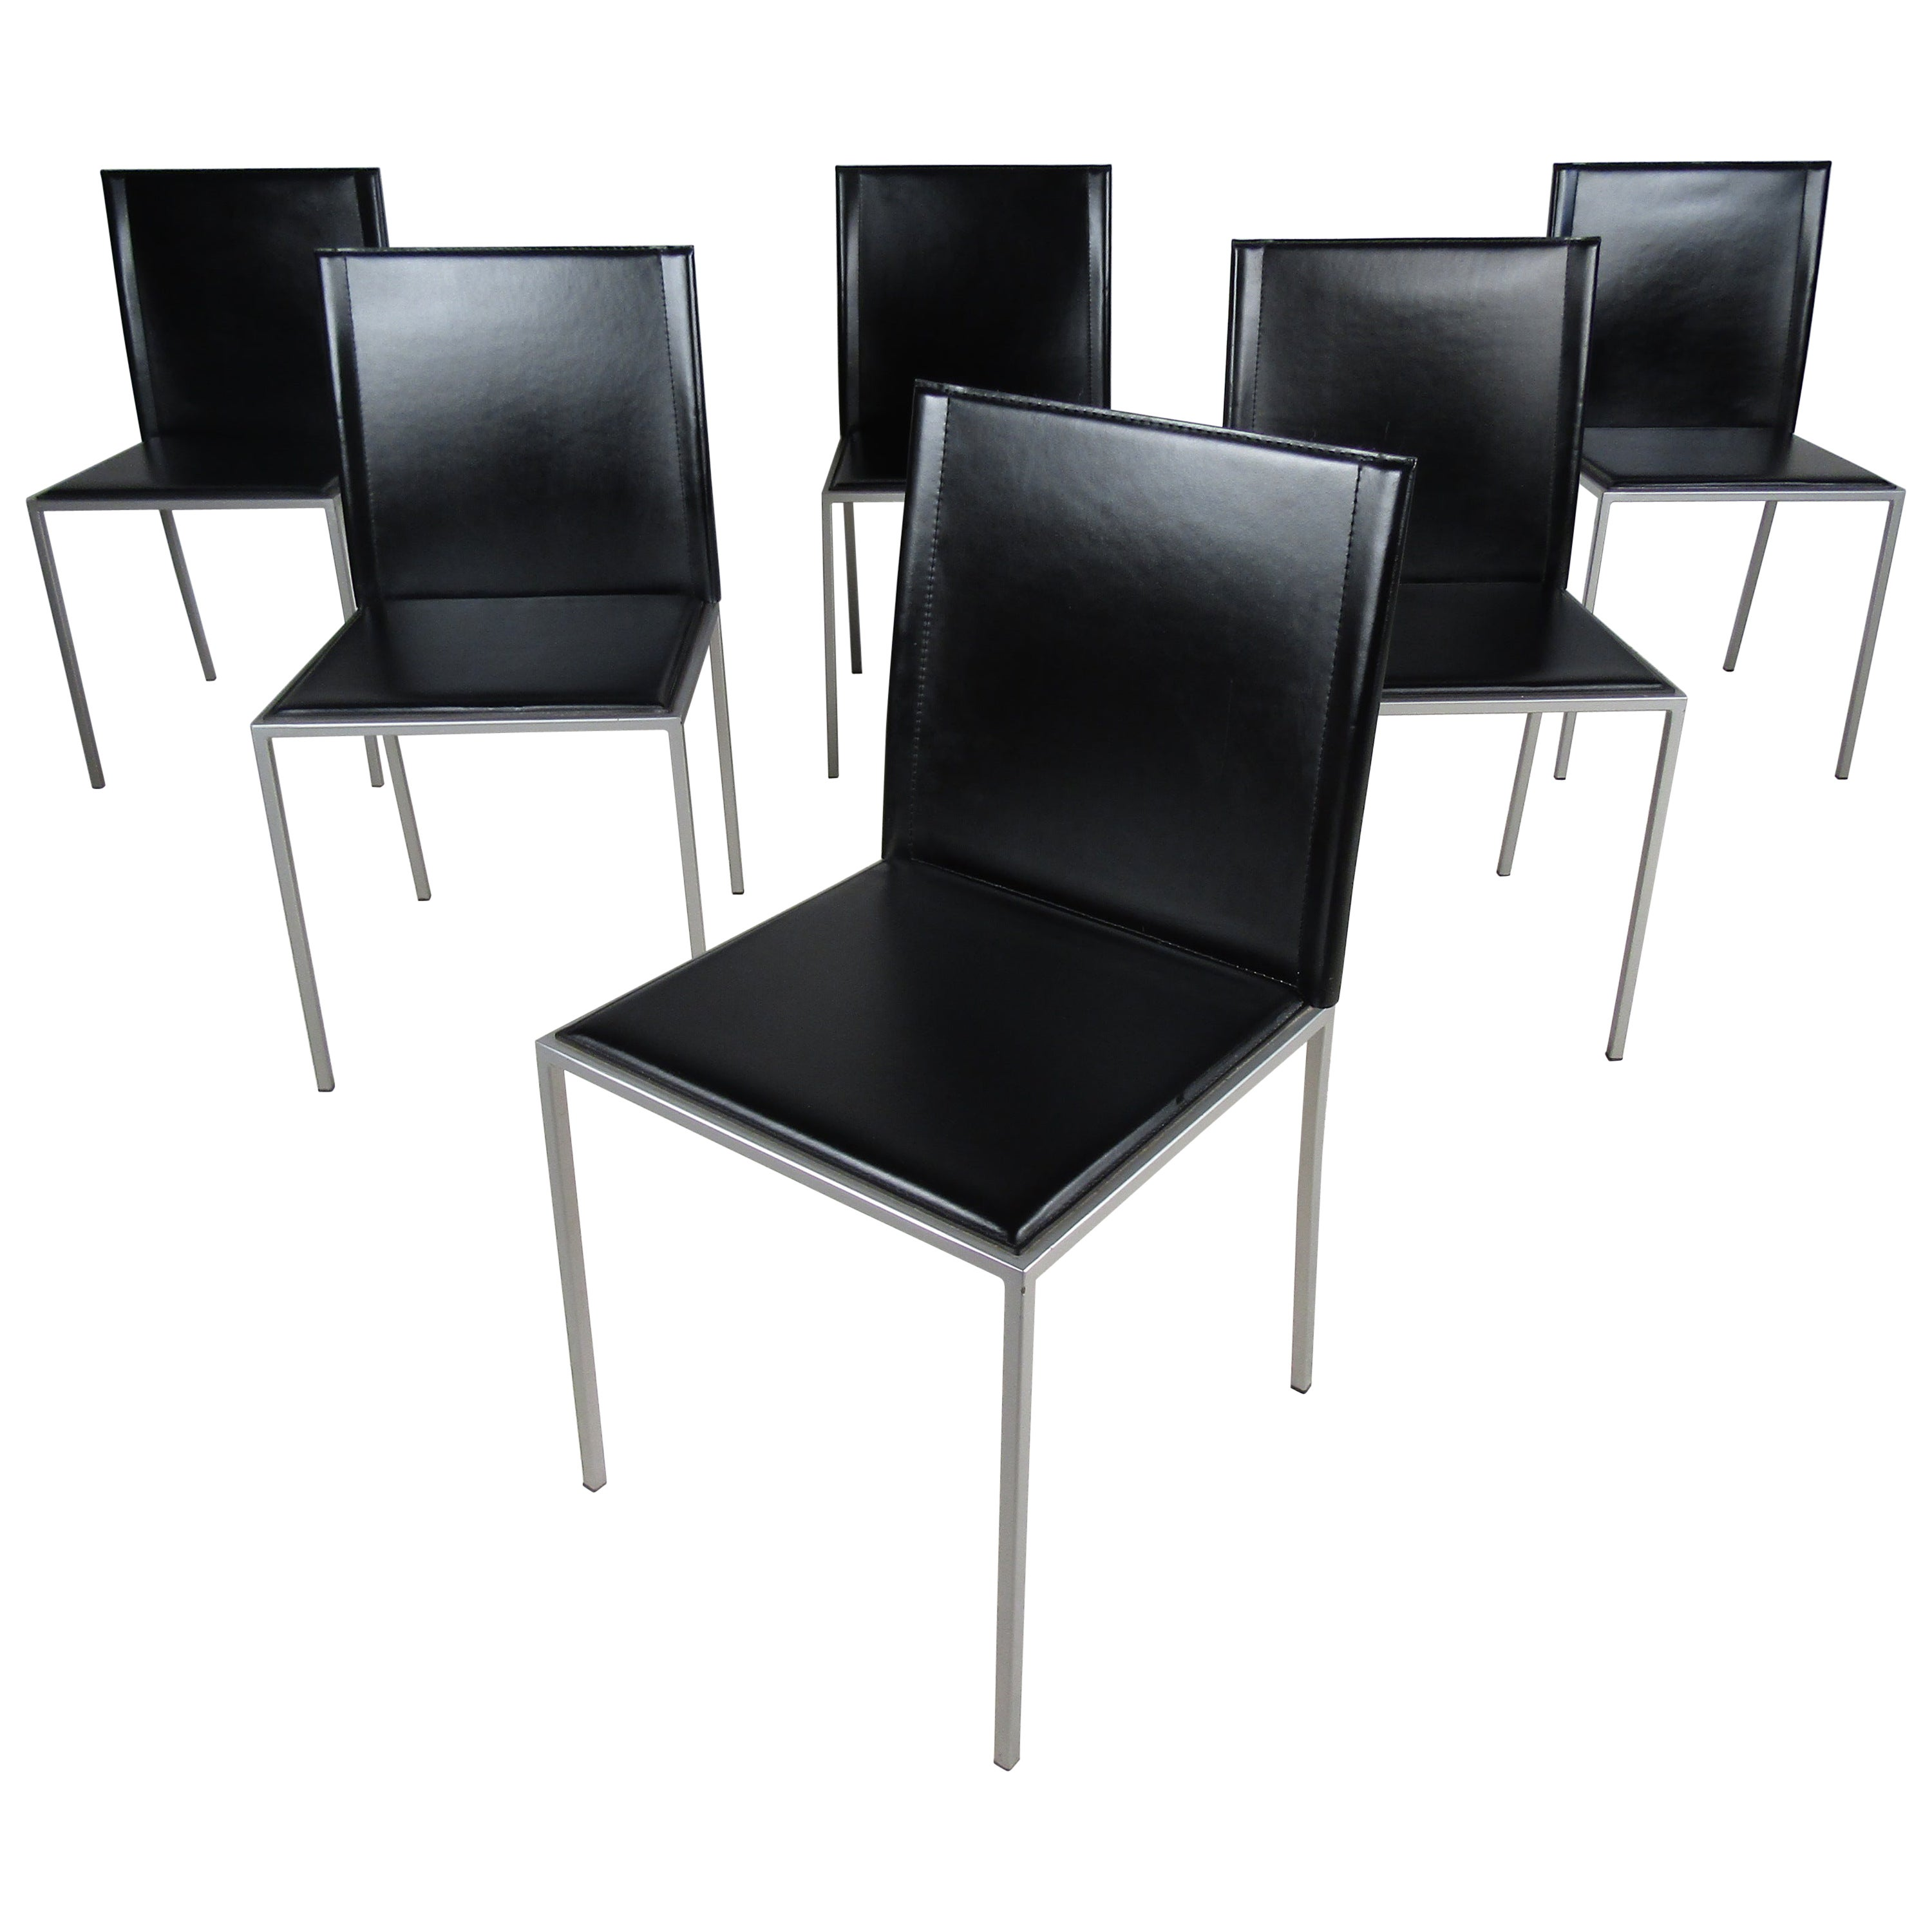 Italian Modern Leather Dining Chairs